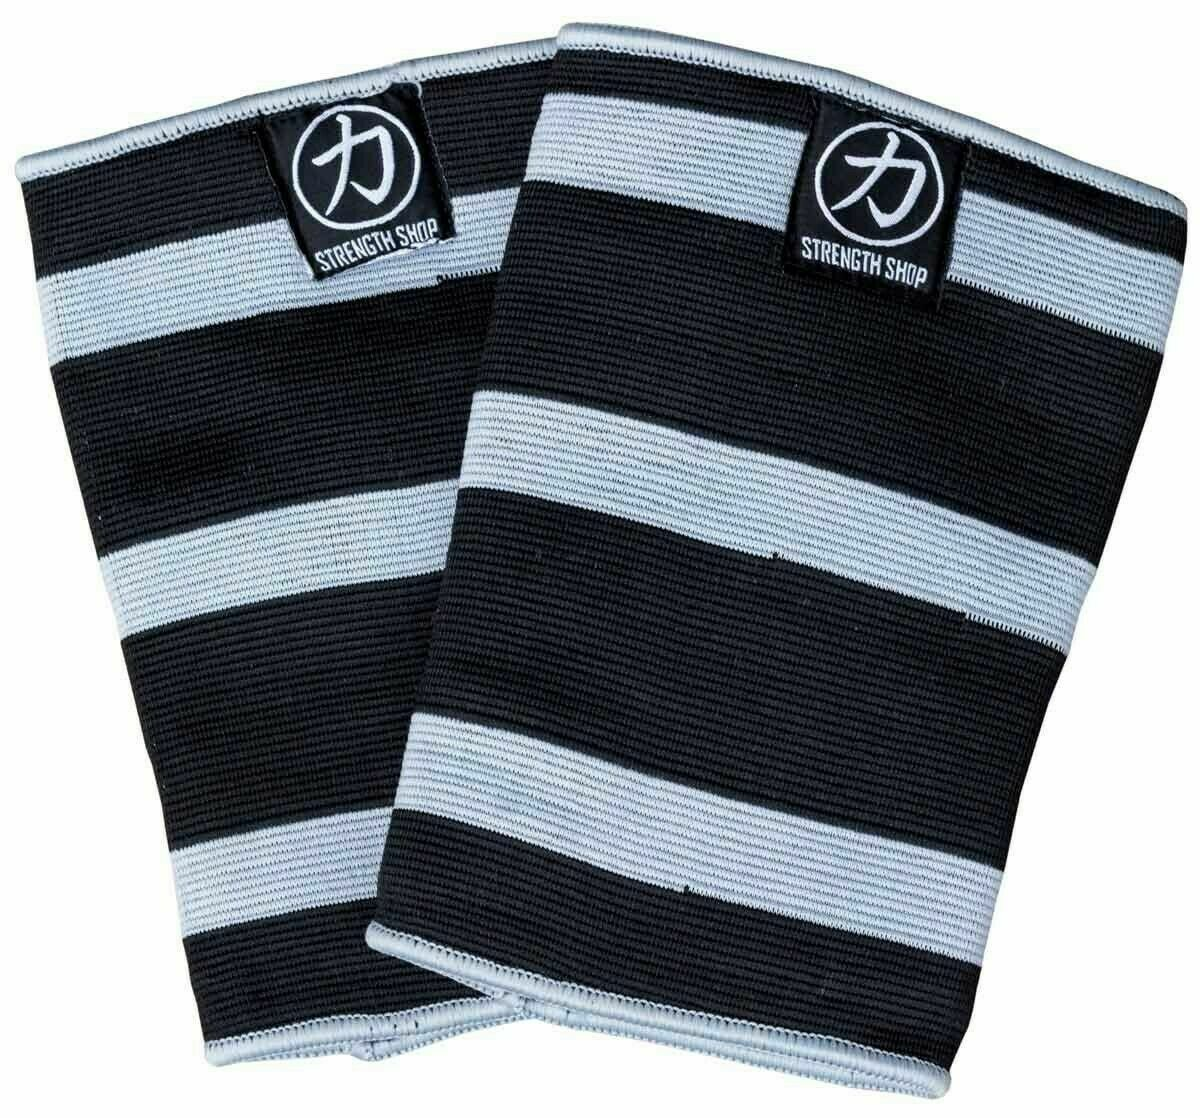 STRENGTH SHOP TRIPLE PLY ODIN KNEE SLEEVES (Large) - FREE FAST SHIPPING